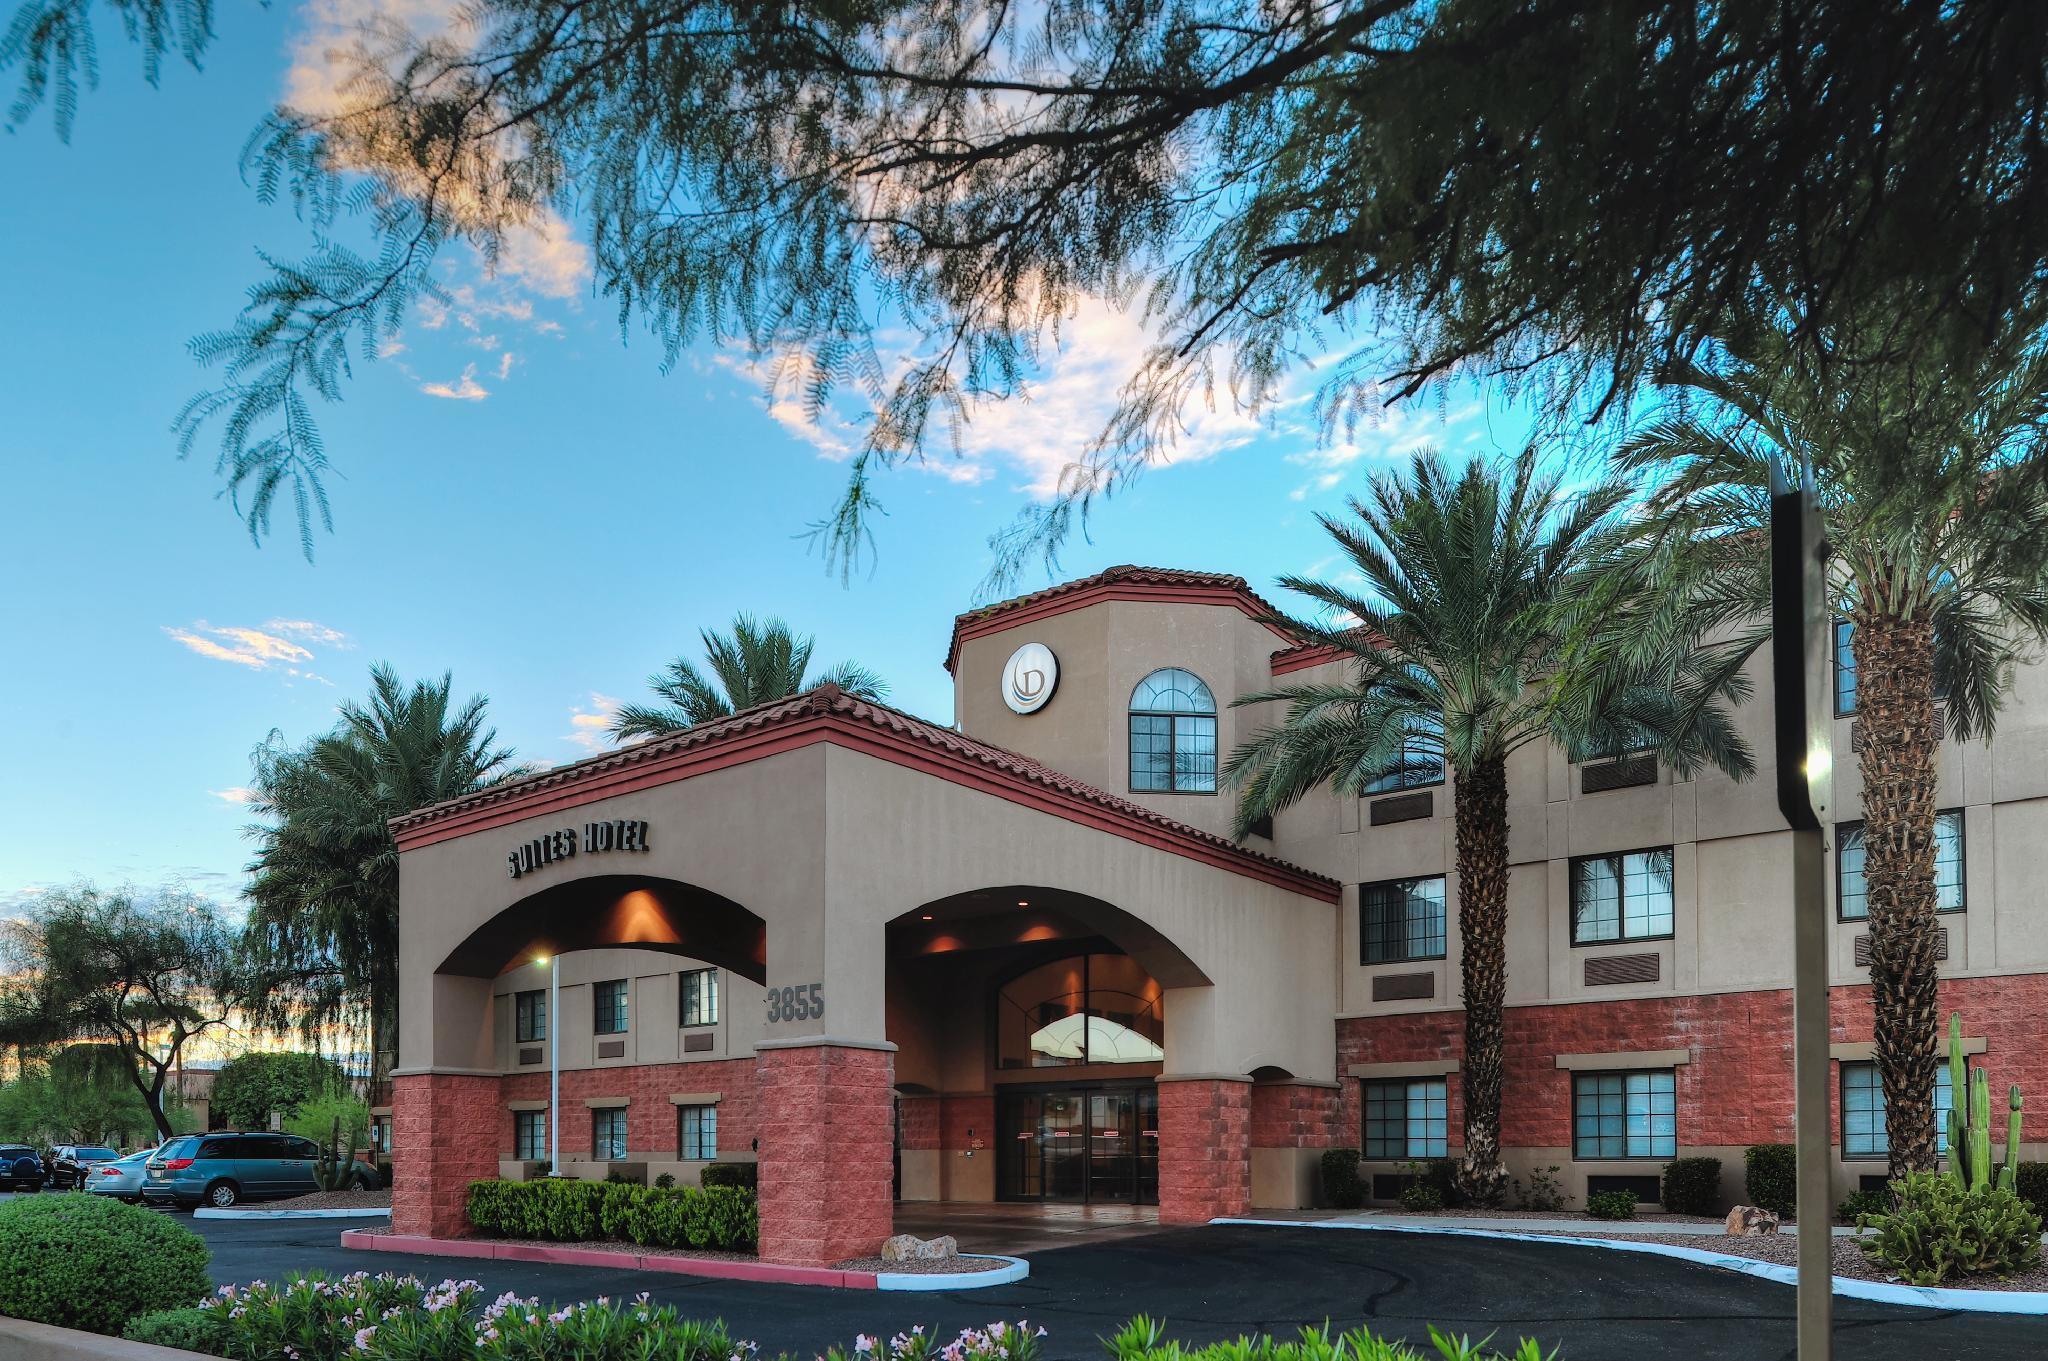 Varsity Clubs Of America   Tucson By Diamond Resorts